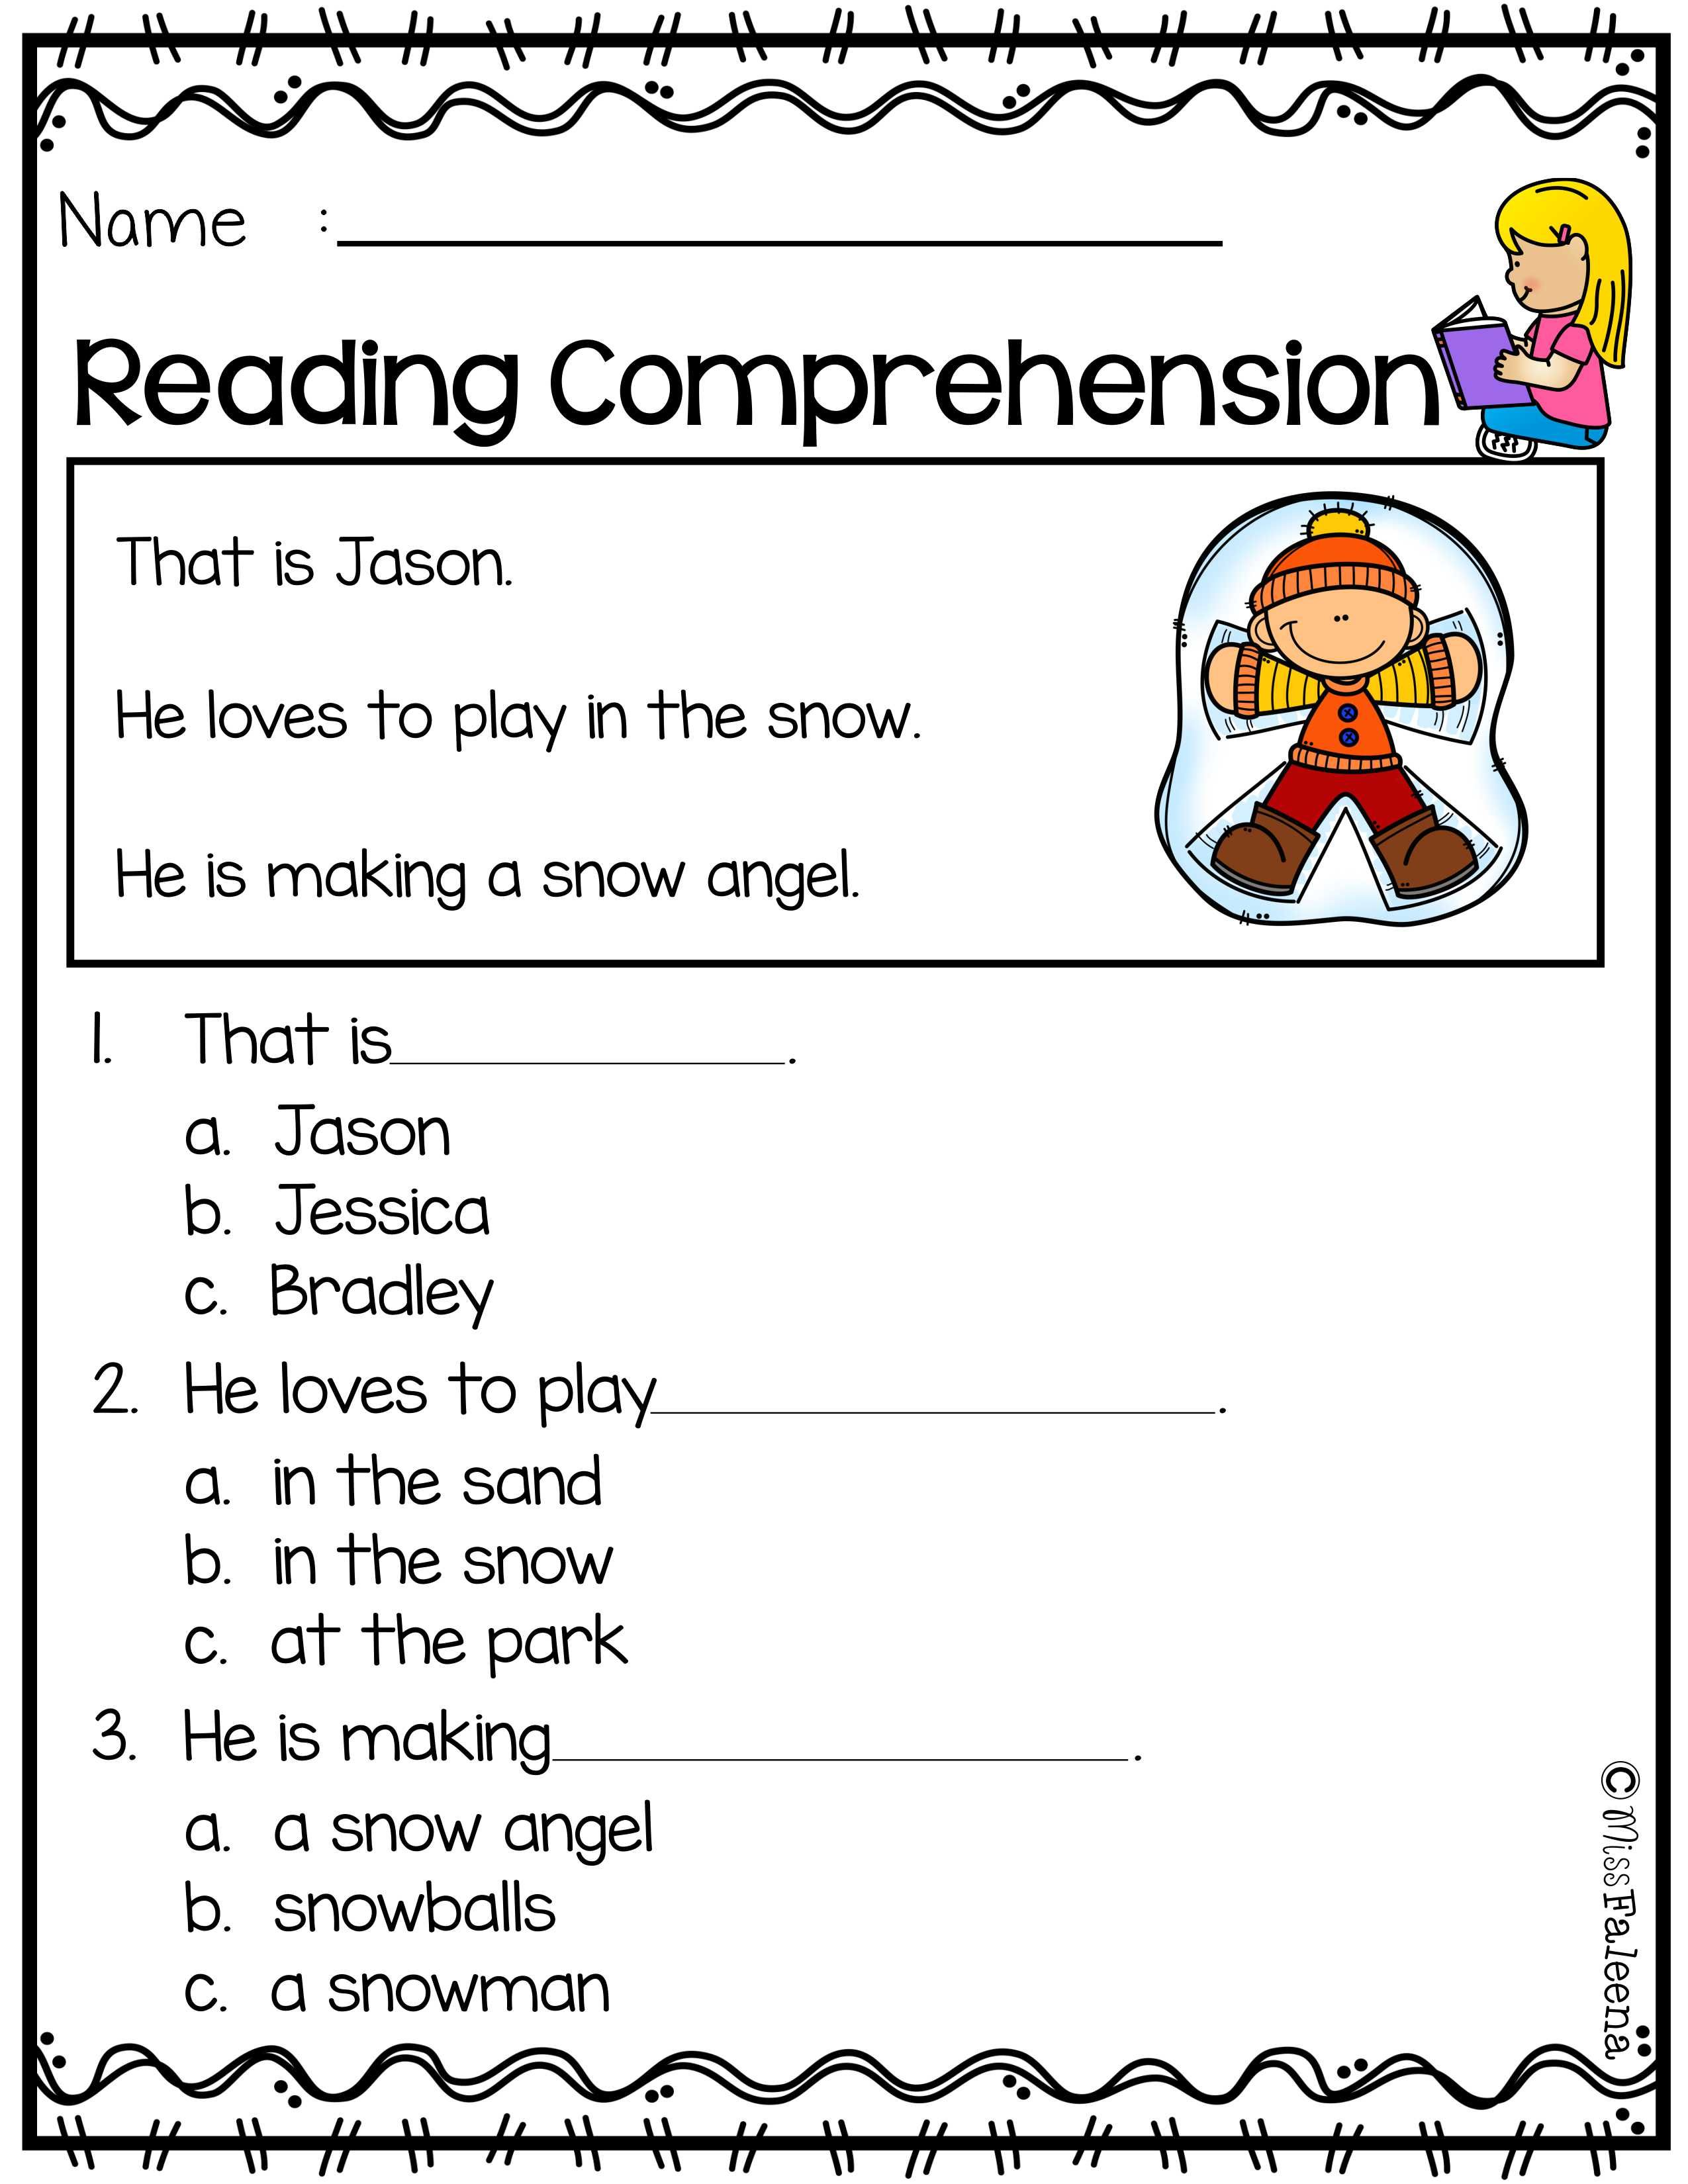 Worksheets Sentence Comprehension Worksheets free reading comprehension is suitable for kindergarten students there are 15 color and black white pages of worksheets each page contains 3 to 4 sentences